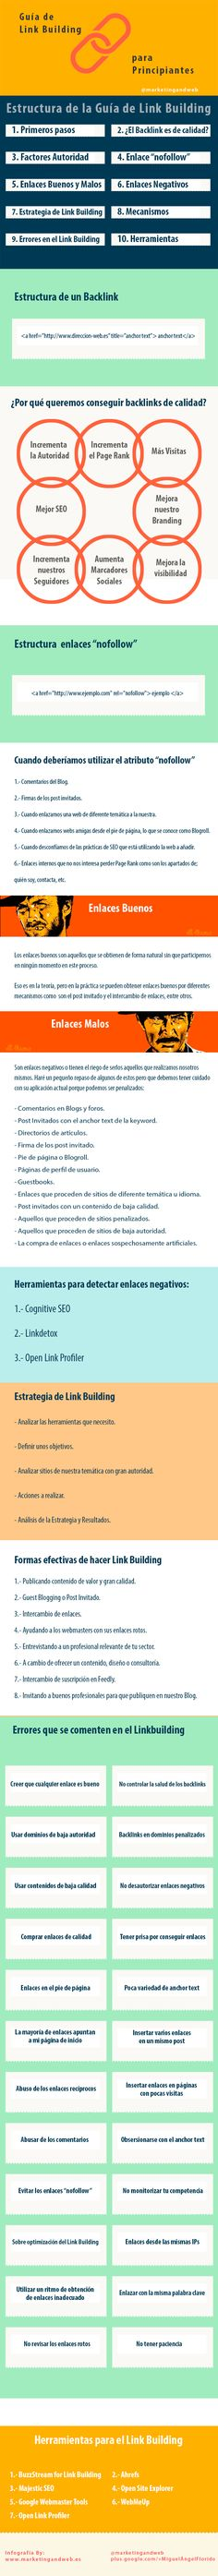 Guía de #LinkBuilding para principiantes  #SEO  by Marketing and Web